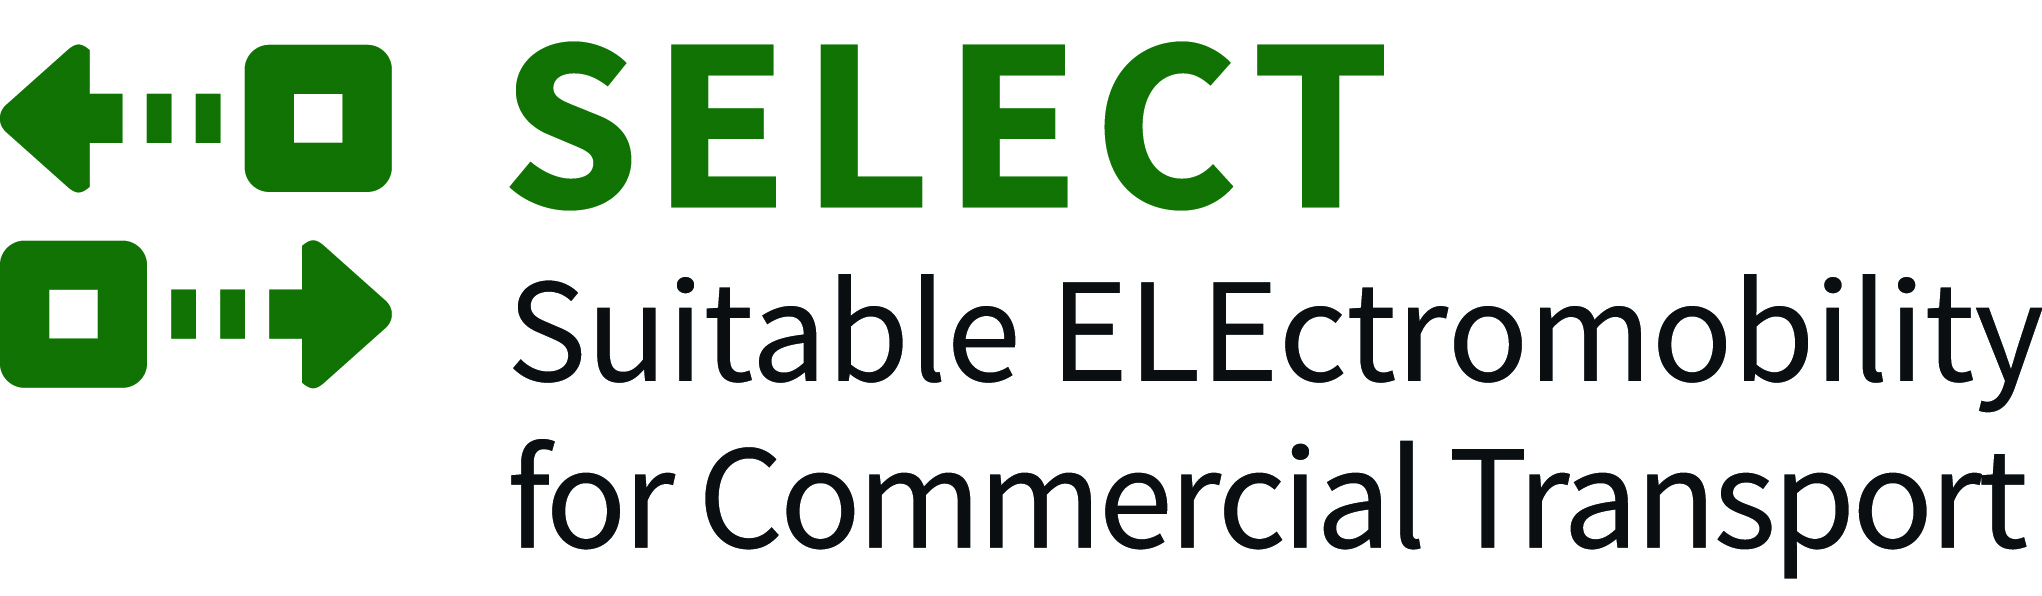 Suitable Electromobility_Logo